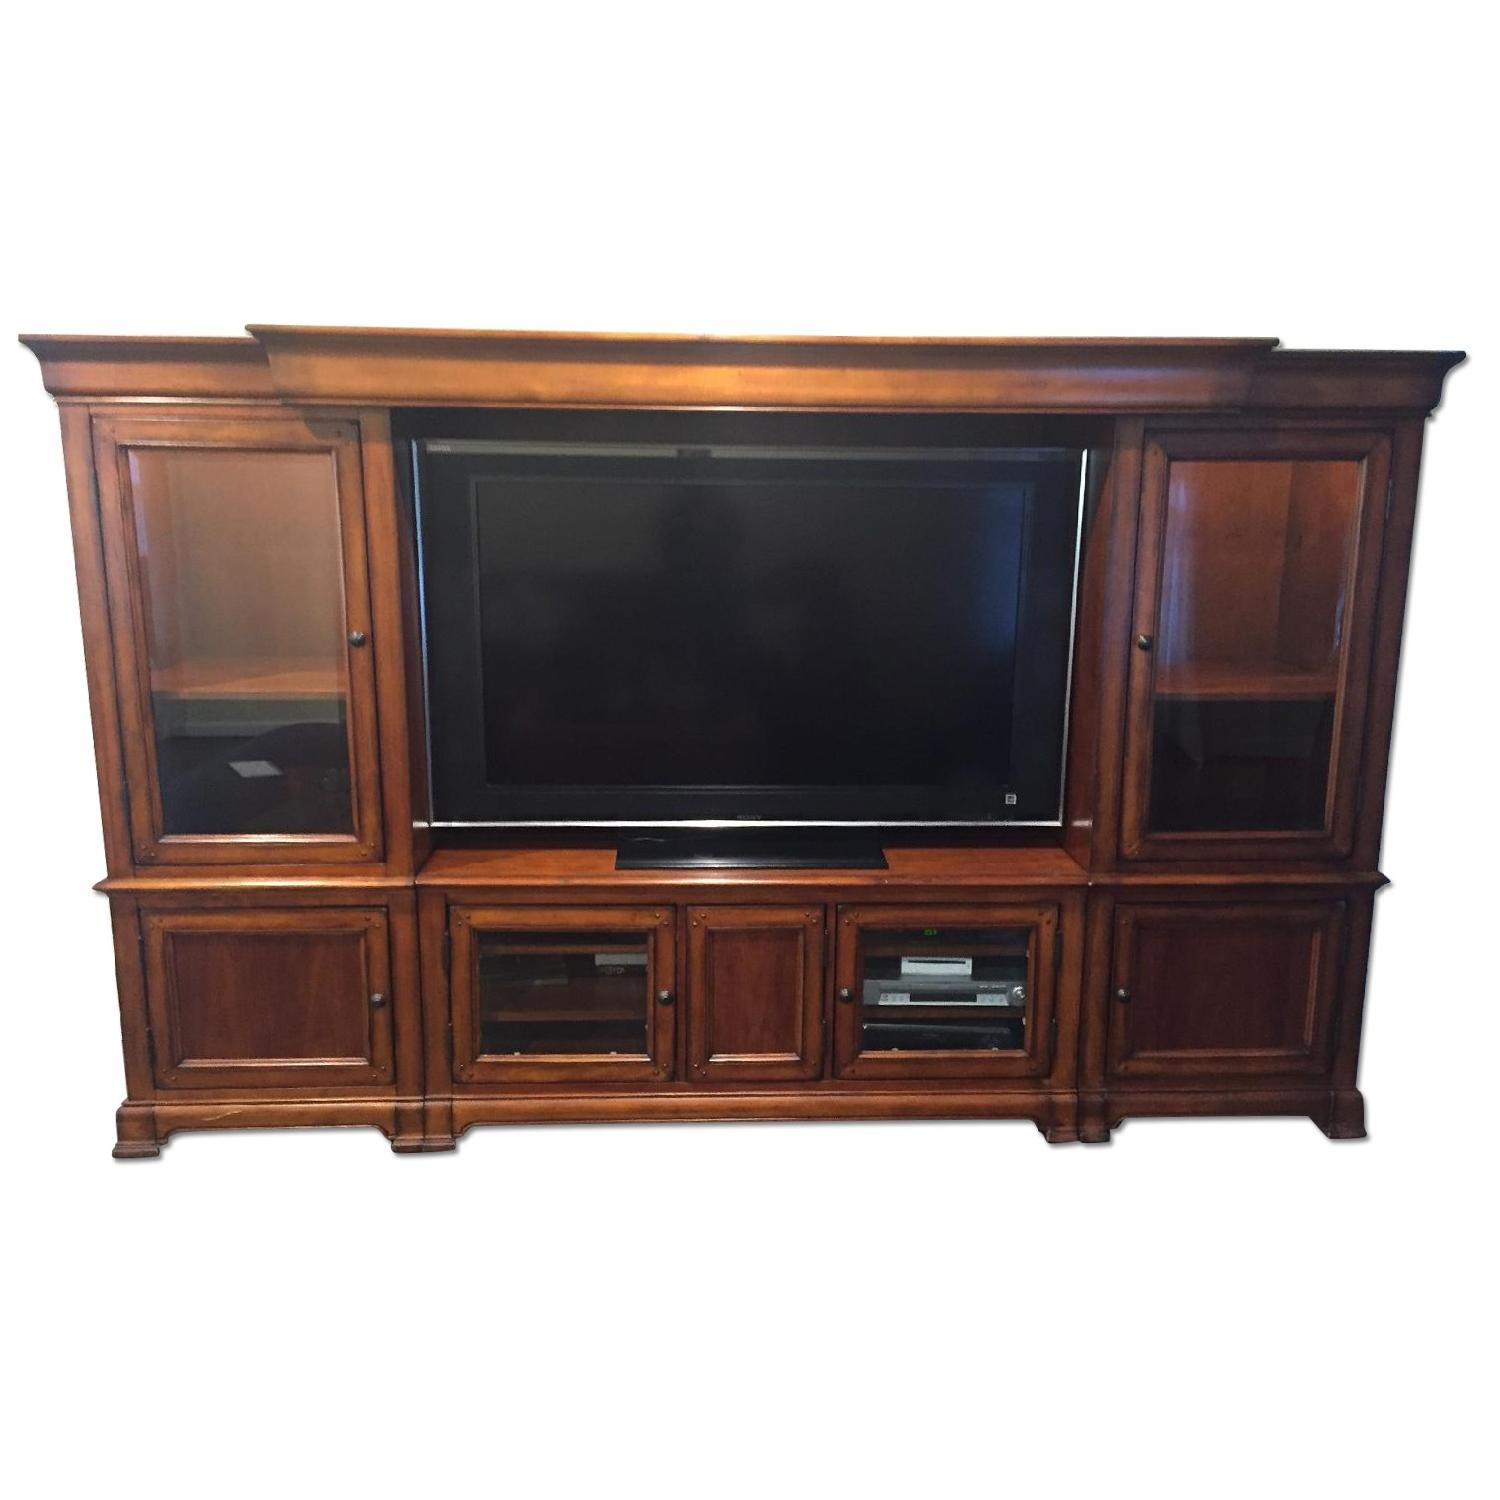 Hooker Furniture Home Entertainment Wall Unit - image-0